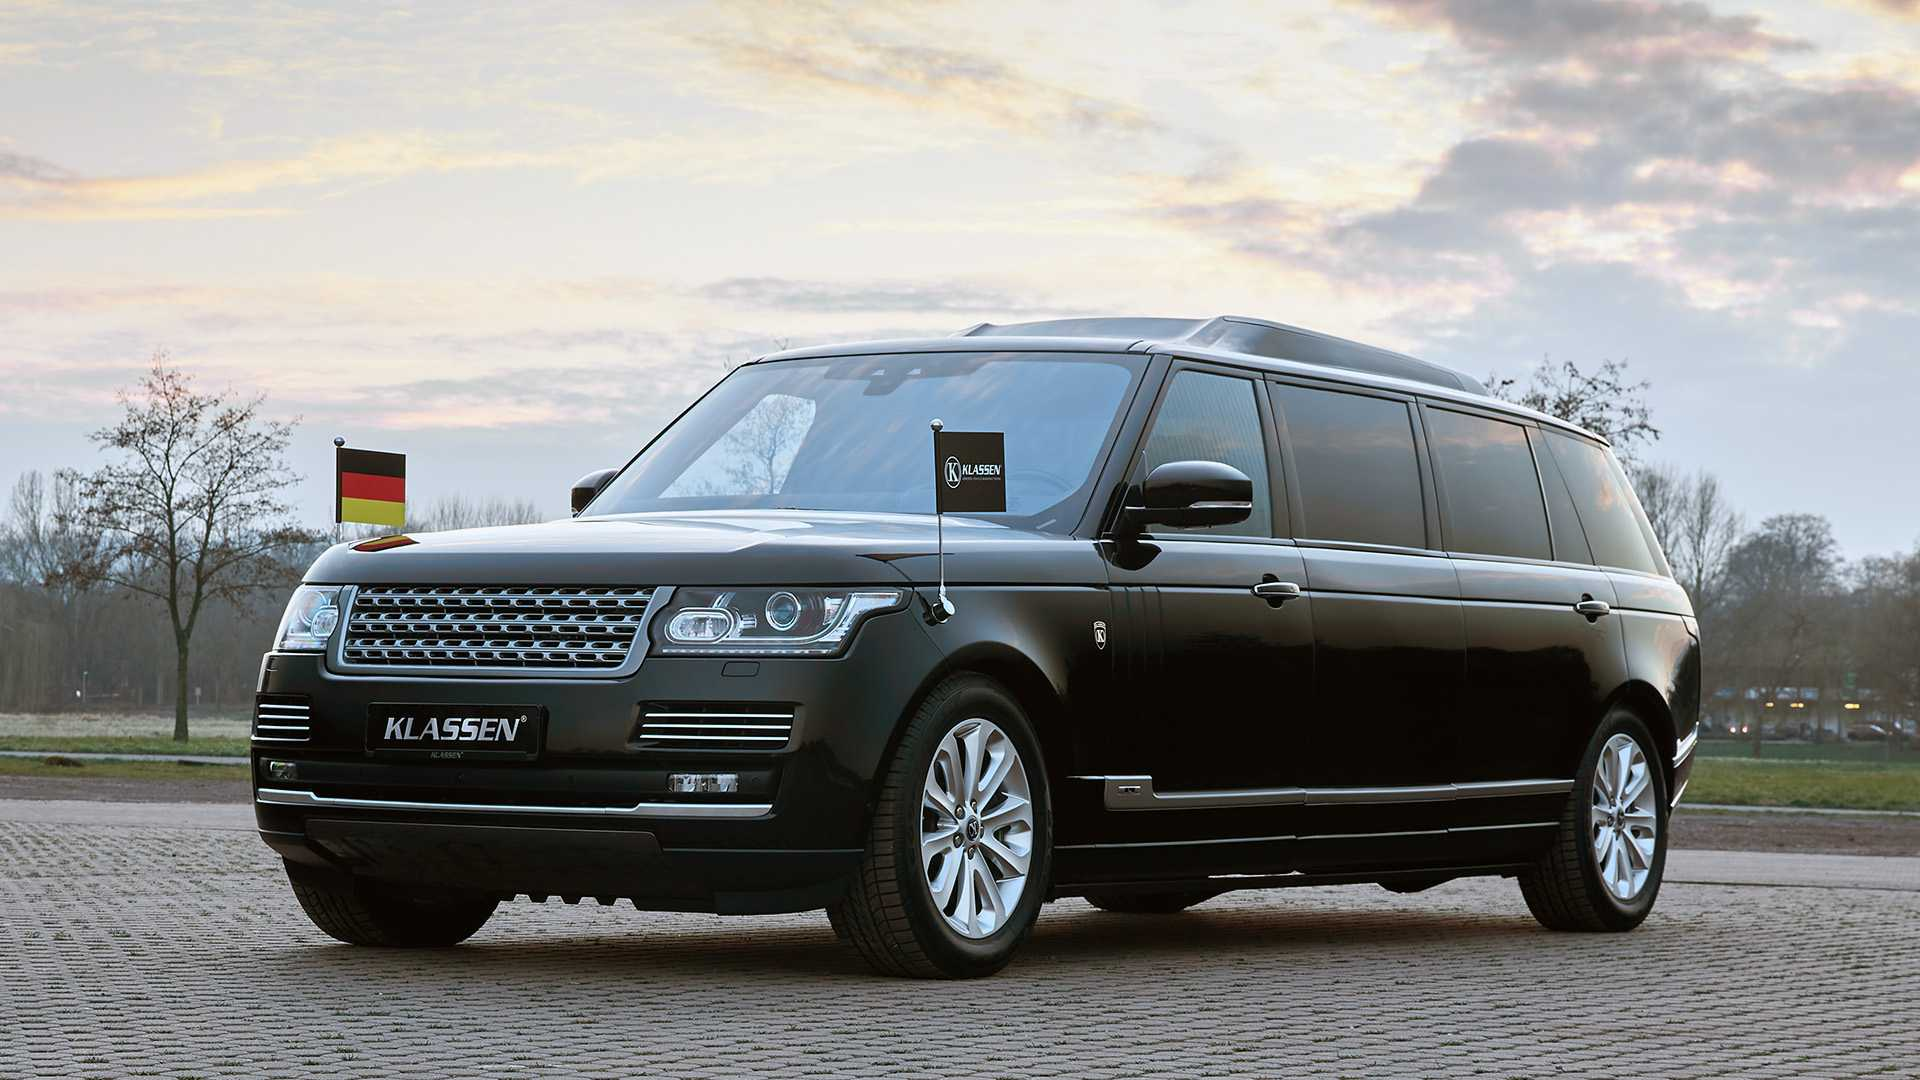 klassen-stretched-land-rover-range-rover-autobiography-2